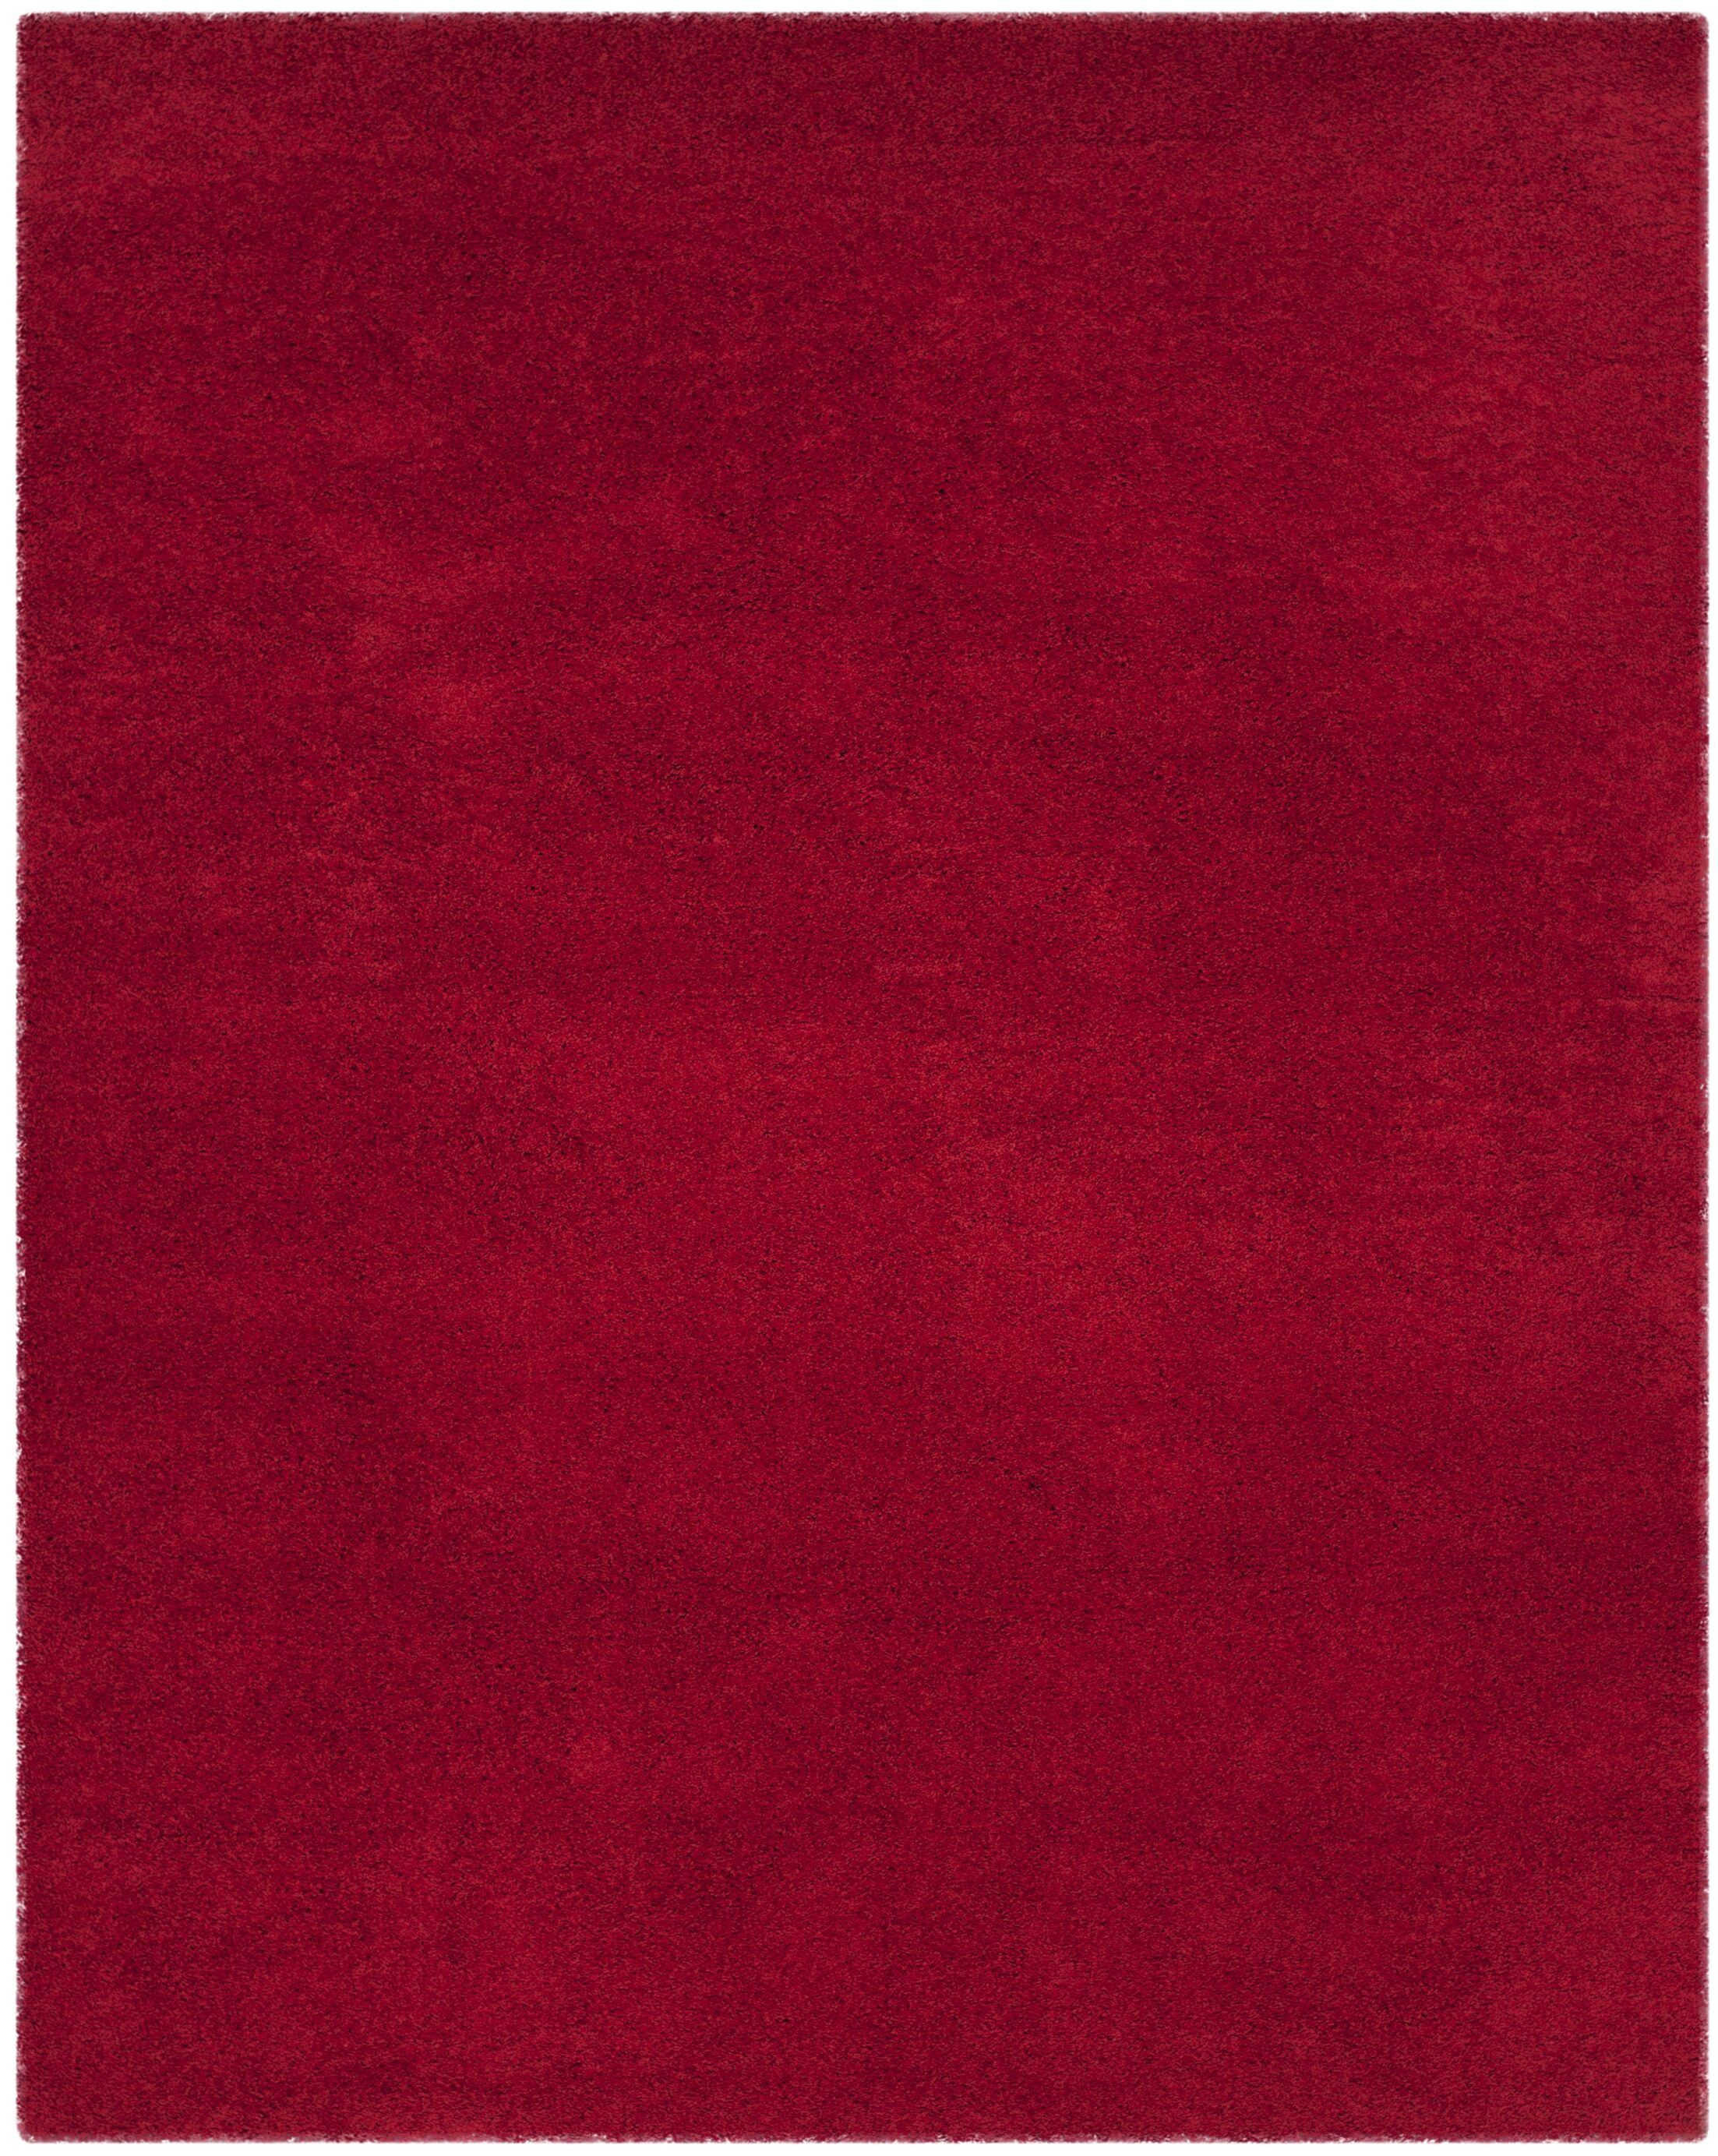 Nickols Red Area Rug Rug Size: Rectangle 8' x 10'